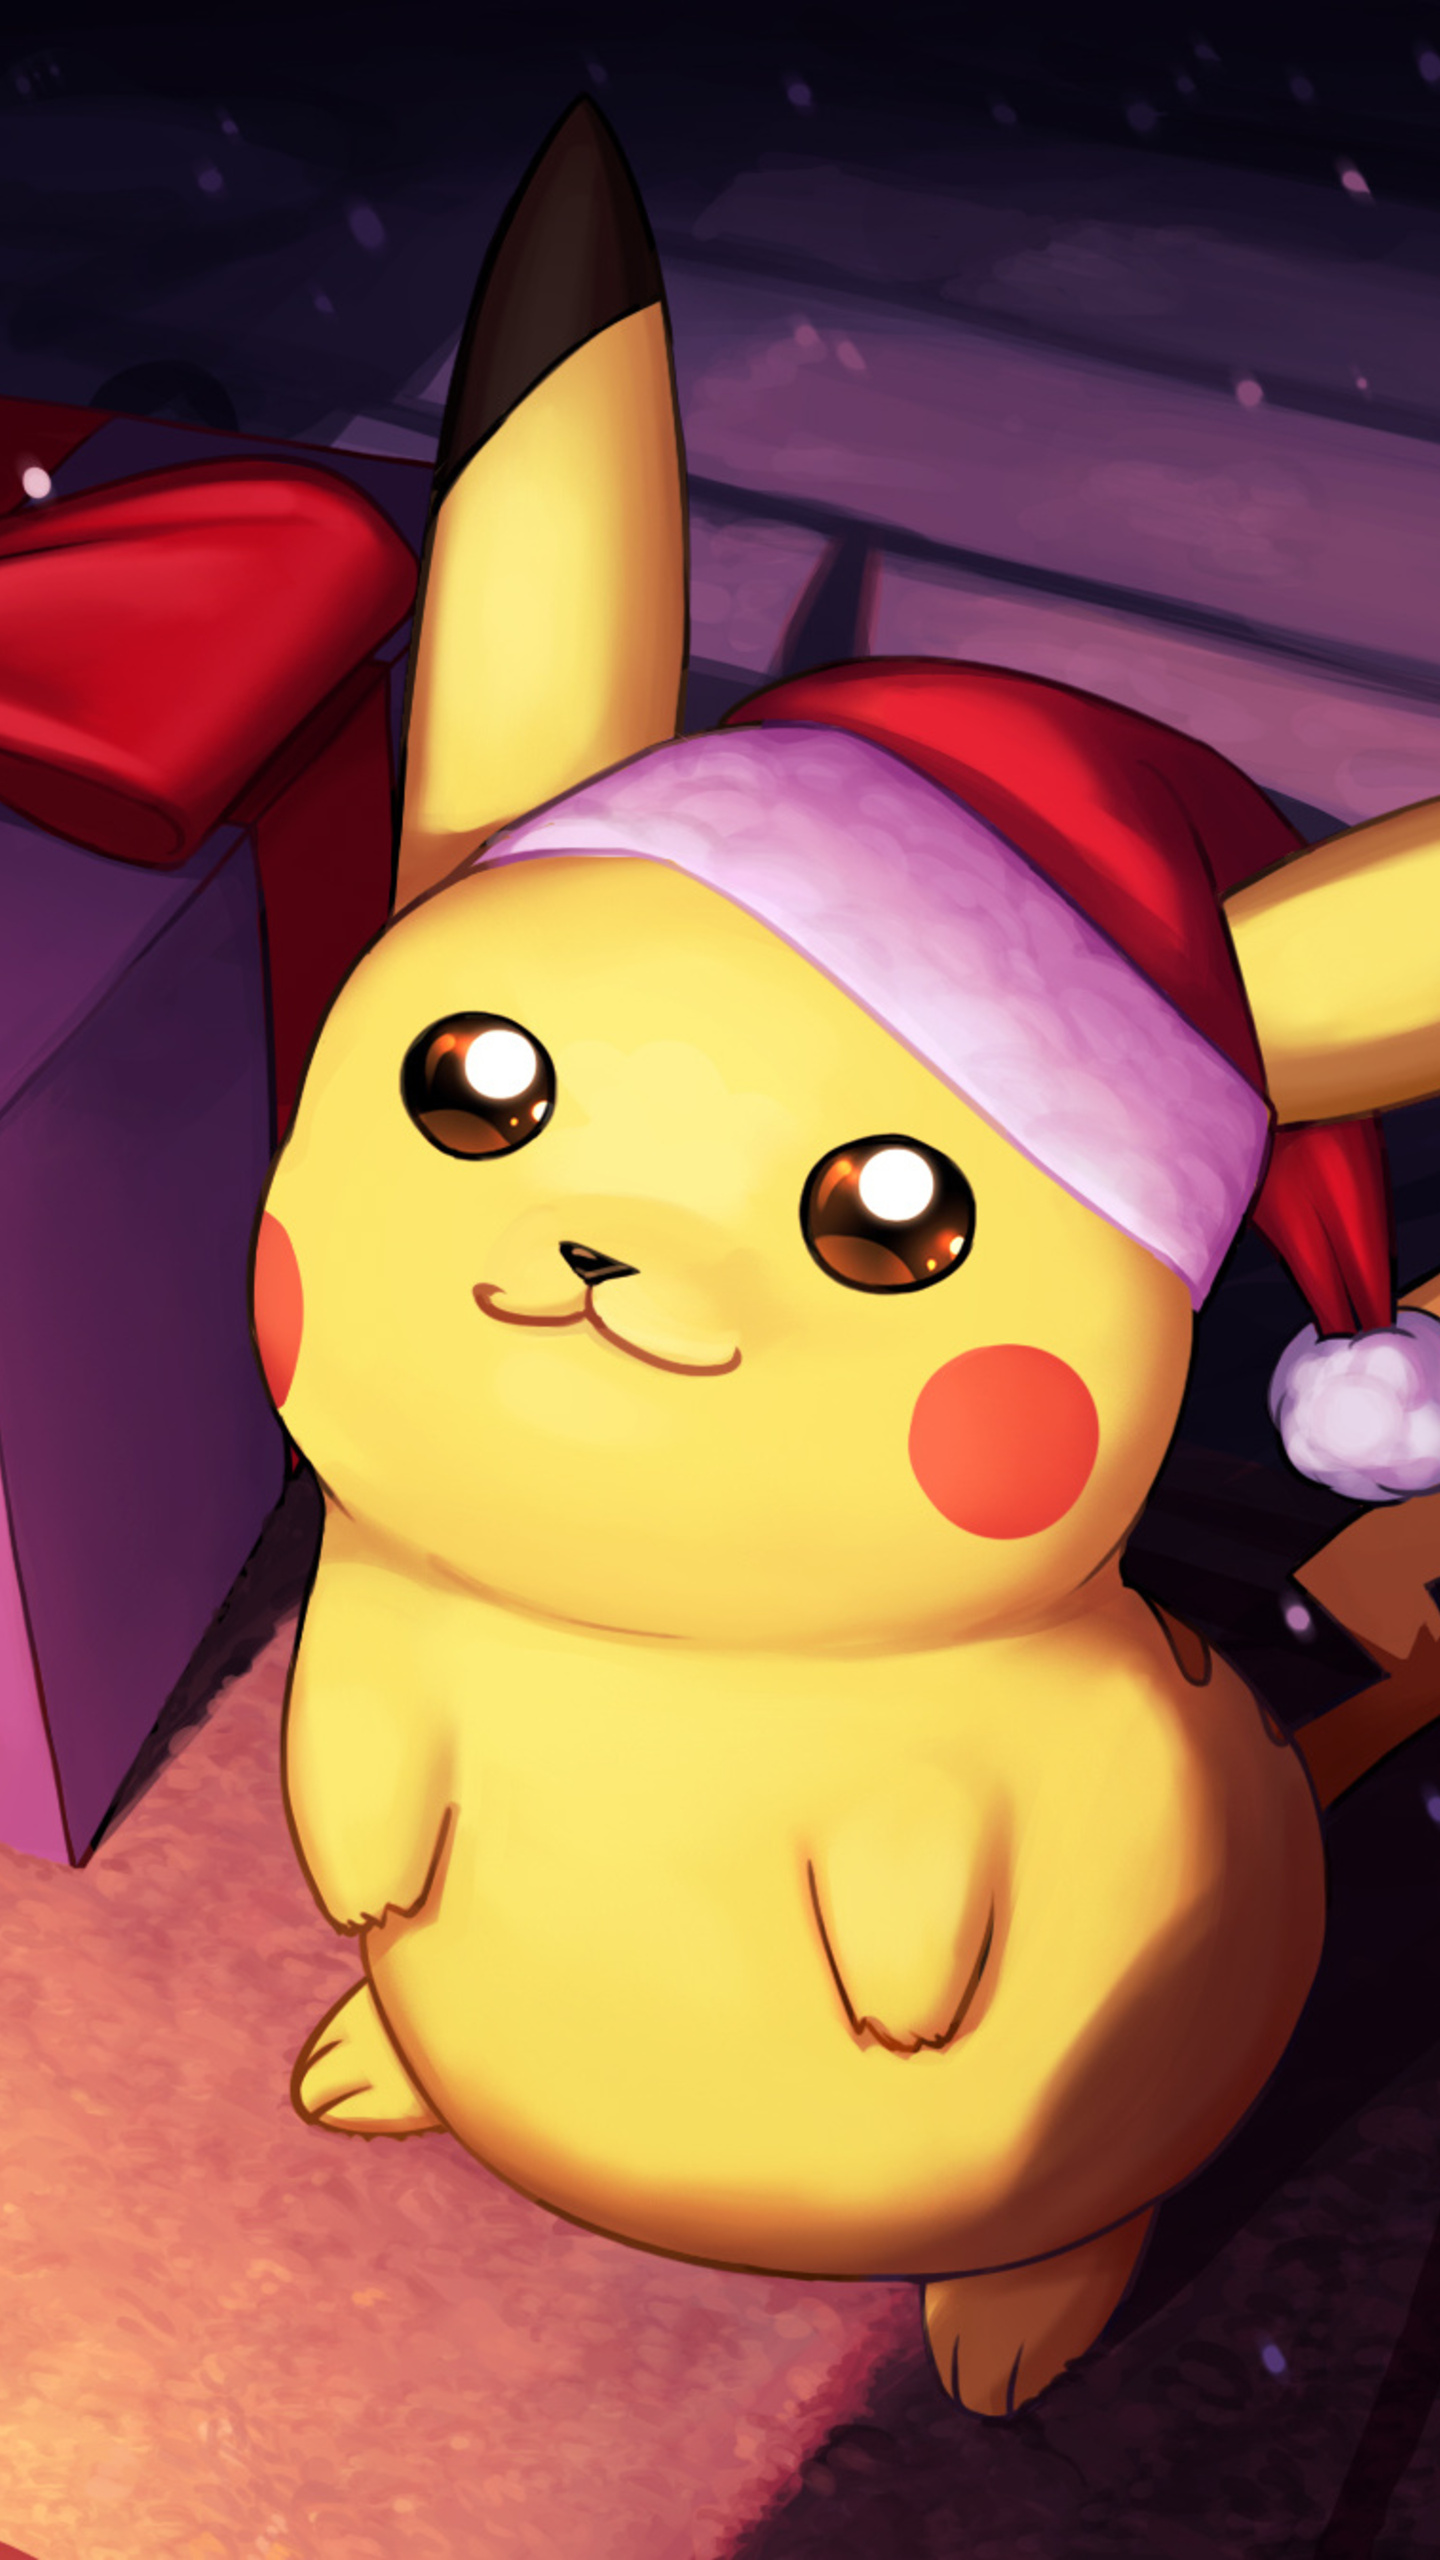 pikachu-on-christmas-day-fanart-da.jpg